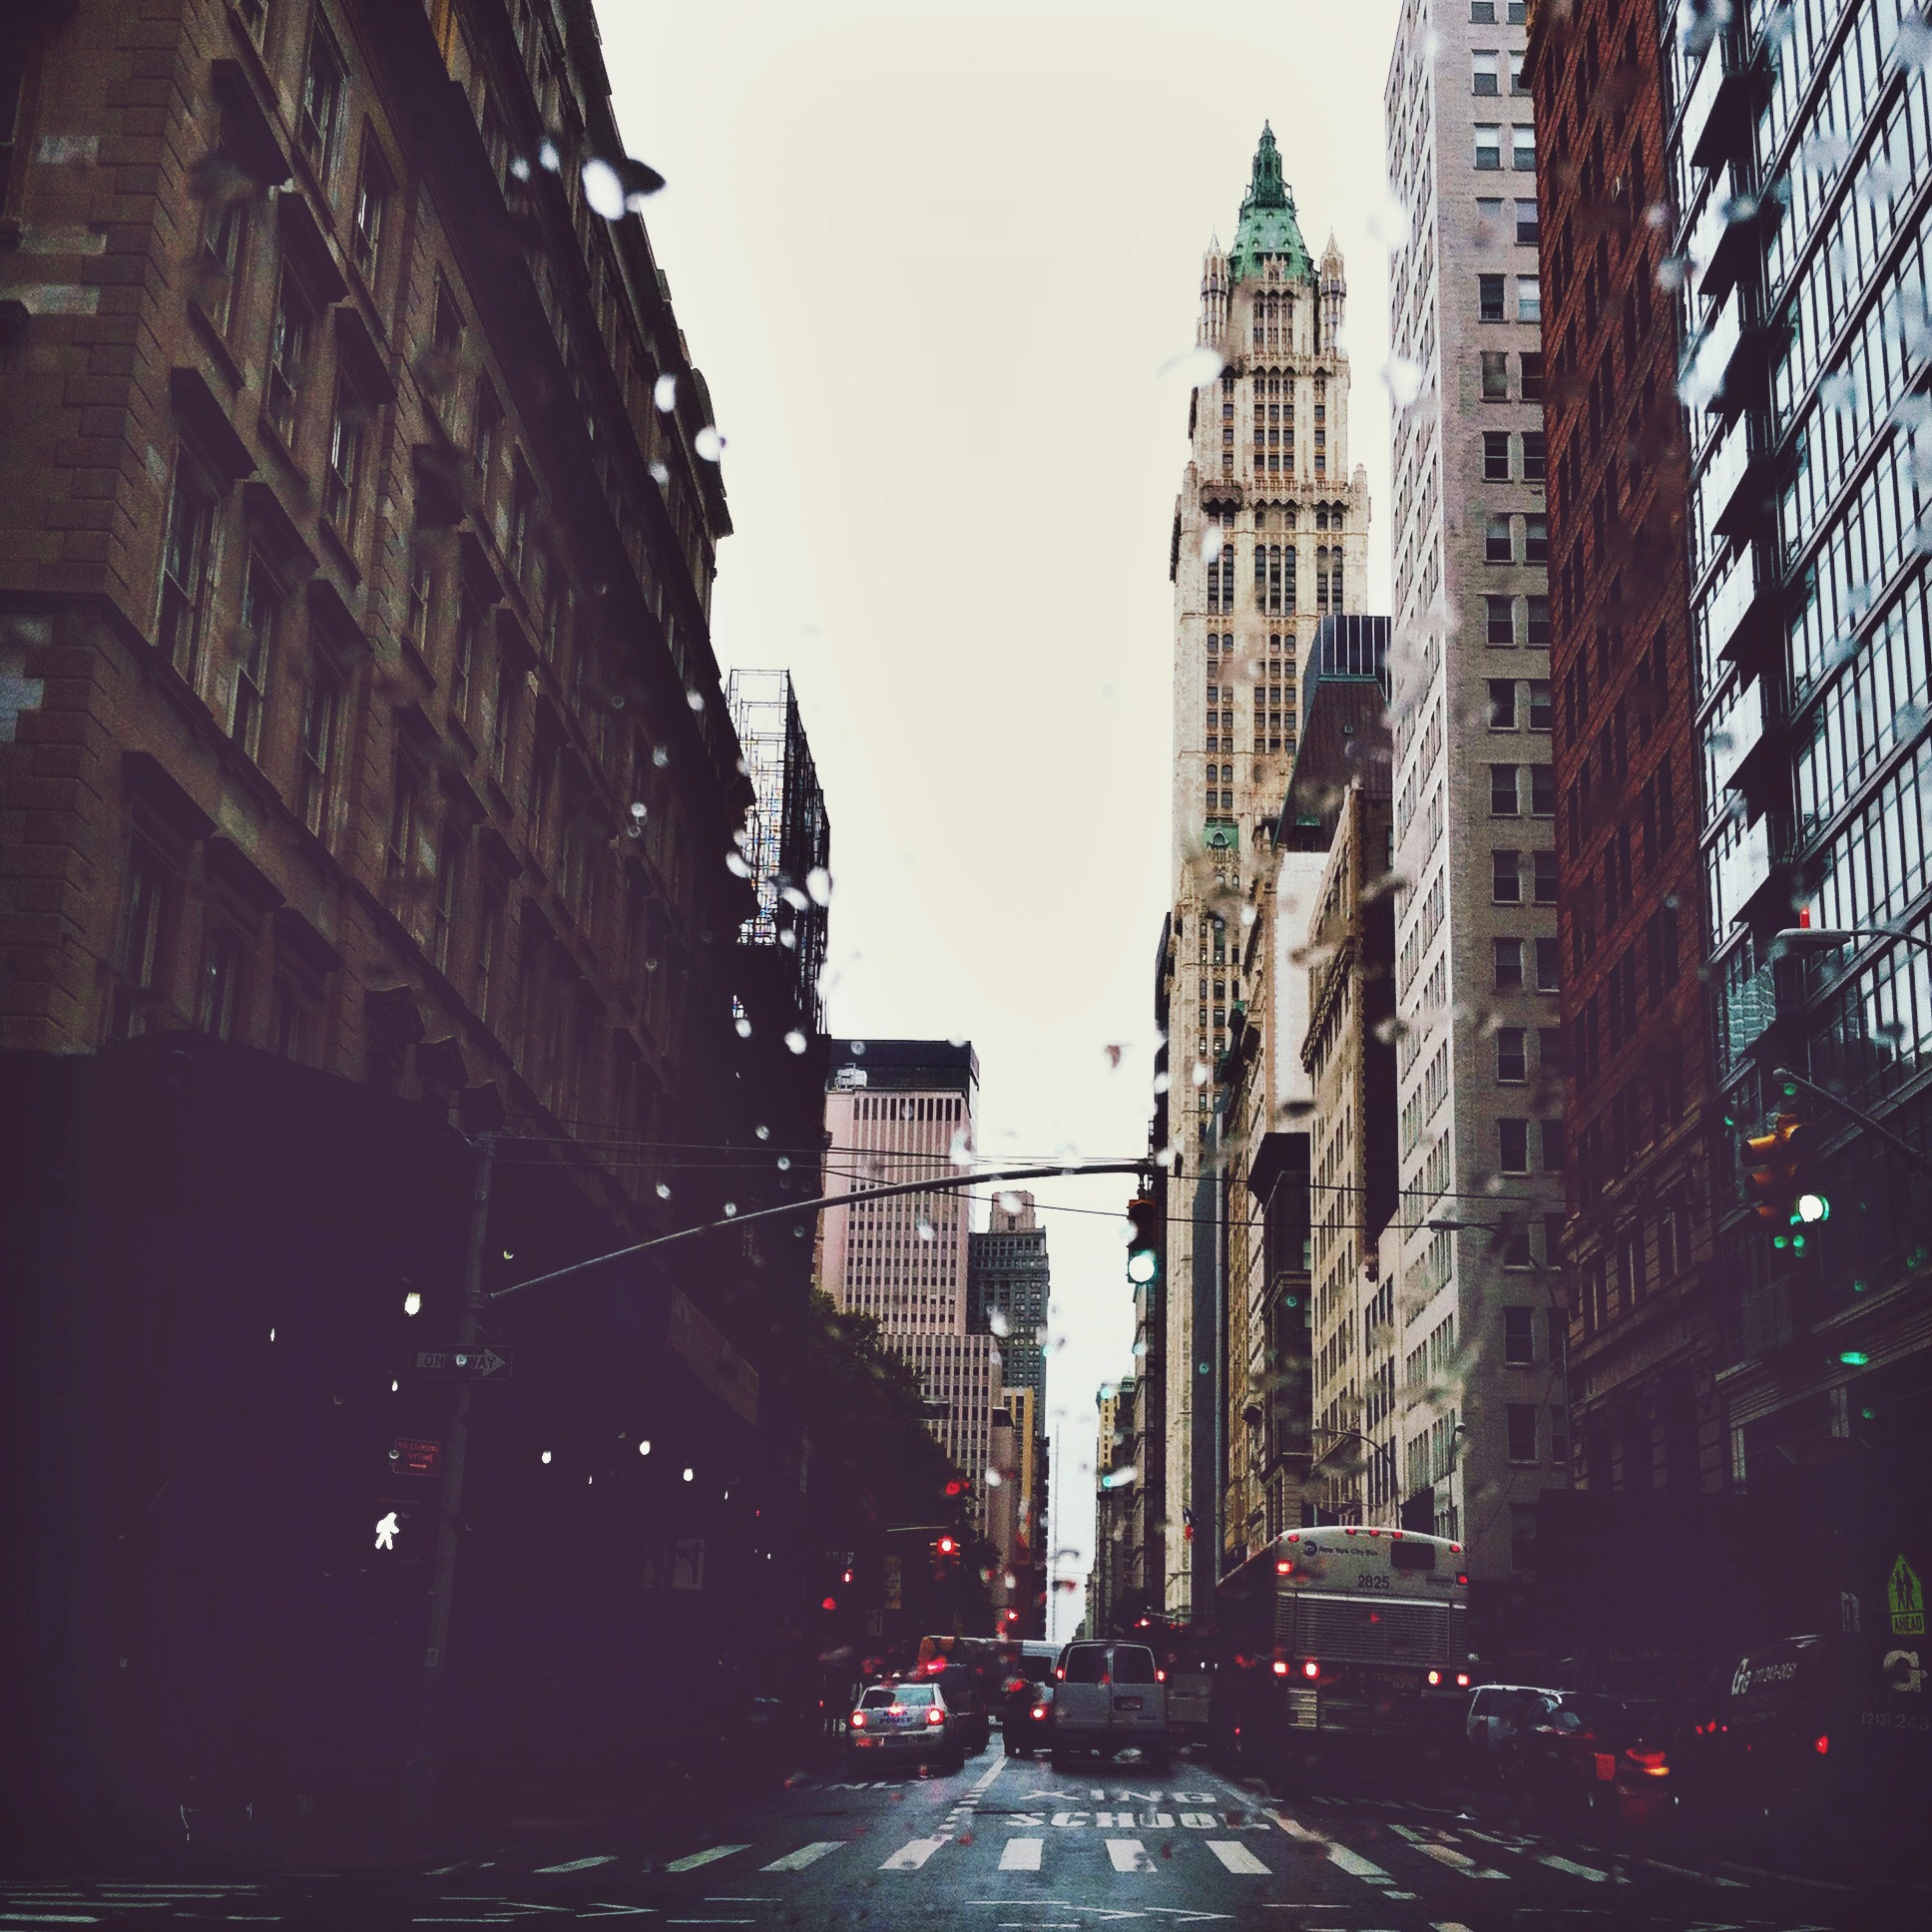 10 Things Driving in NYC Taught Me About Life